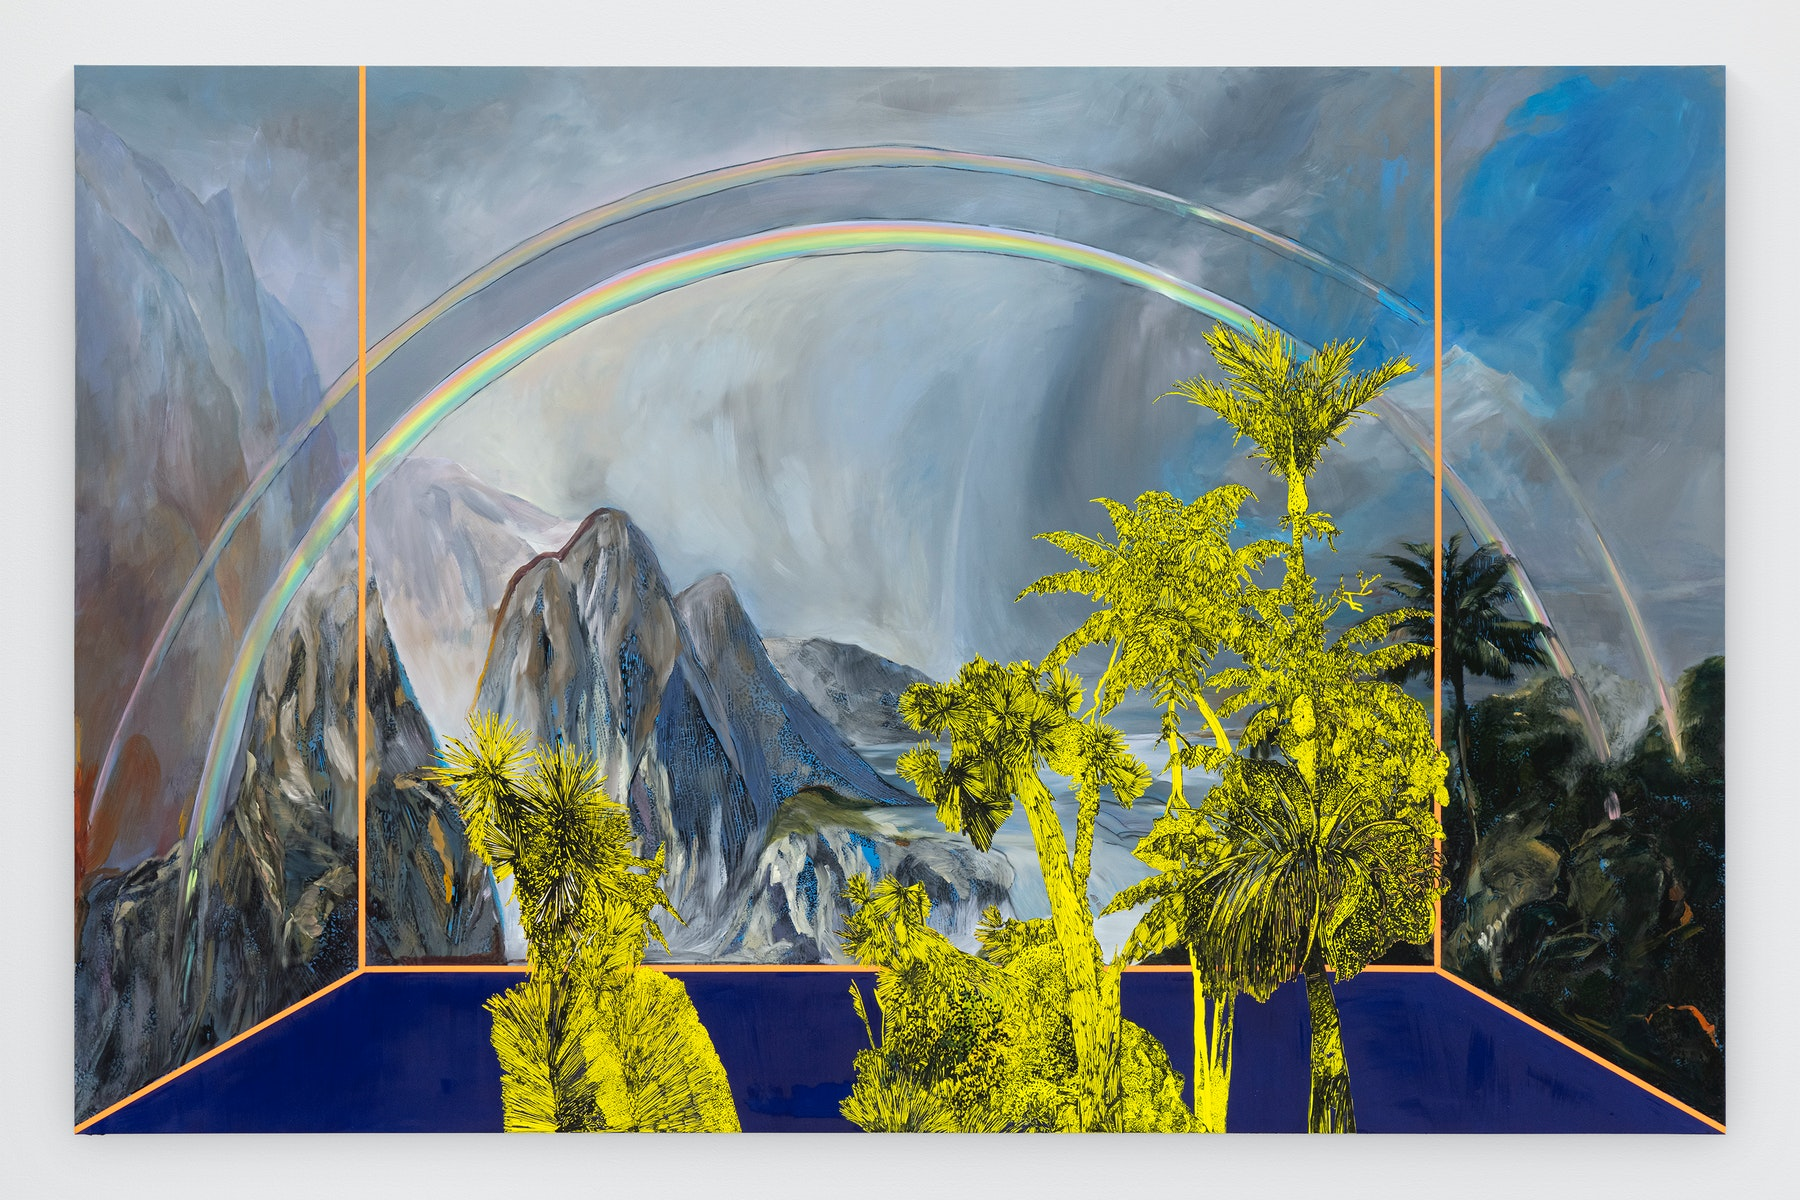 """Whitney Bedford """"Veduta (Church/ Rainbow),"""" 2020 Ink and oil on linen on hybrid panel 66 x 102 x 2"""" [HxWxD] (167.64 x 259.08 x 5.08 cm) Inventory #BED369 Courtesy of the artist and Vielmetter Los Angeles Photo credit: Evan Bedford"""